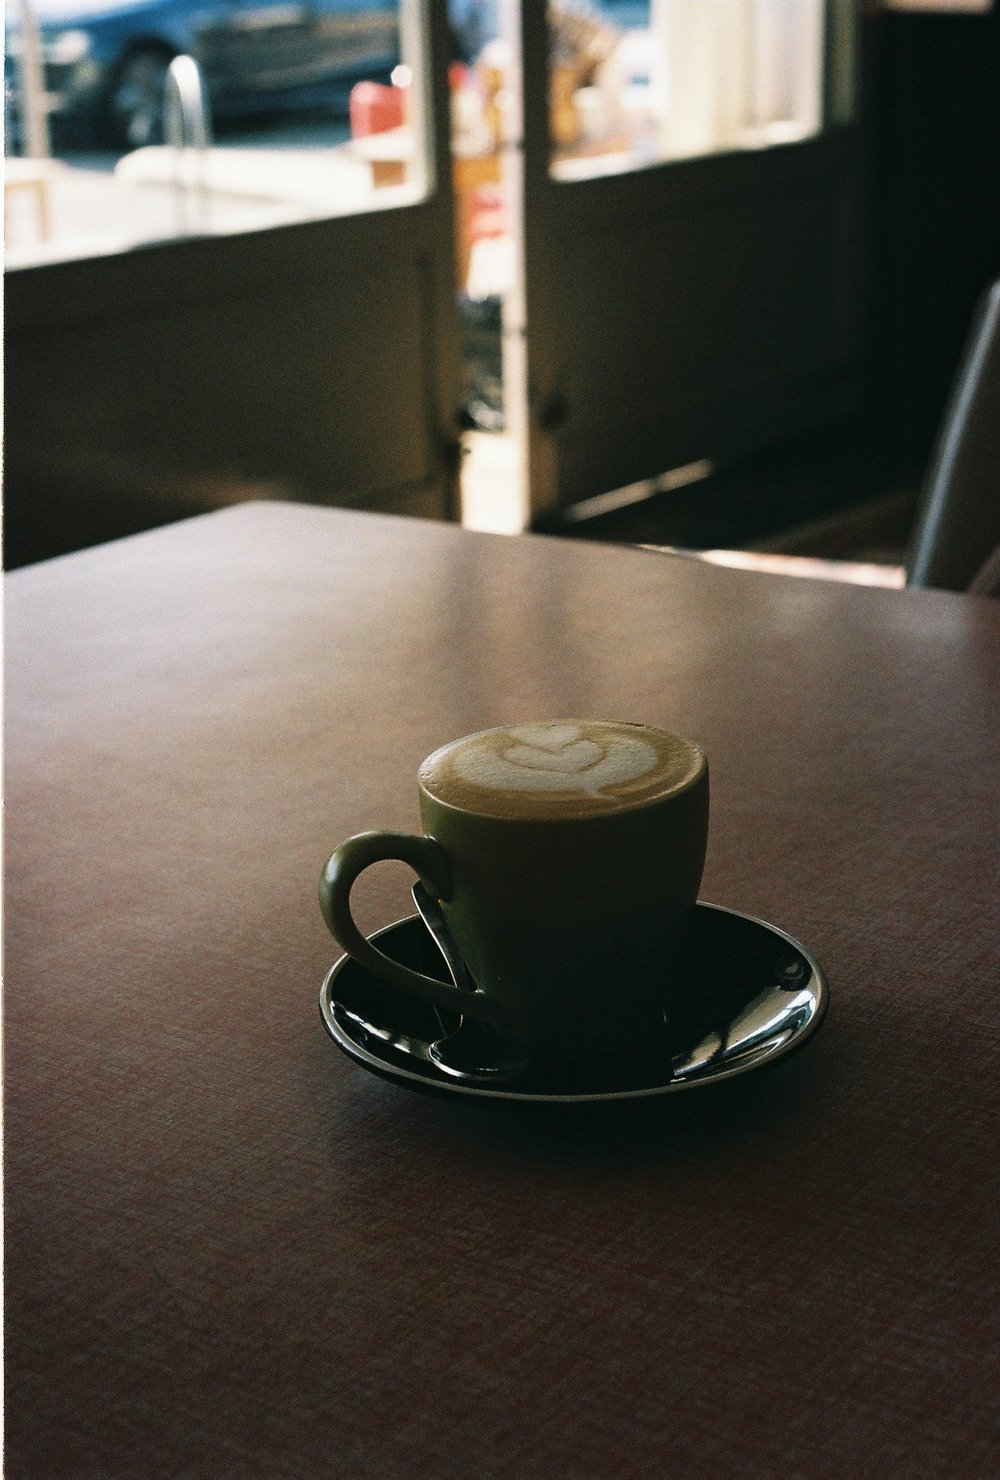 Flat White, Ootong & Lincoln